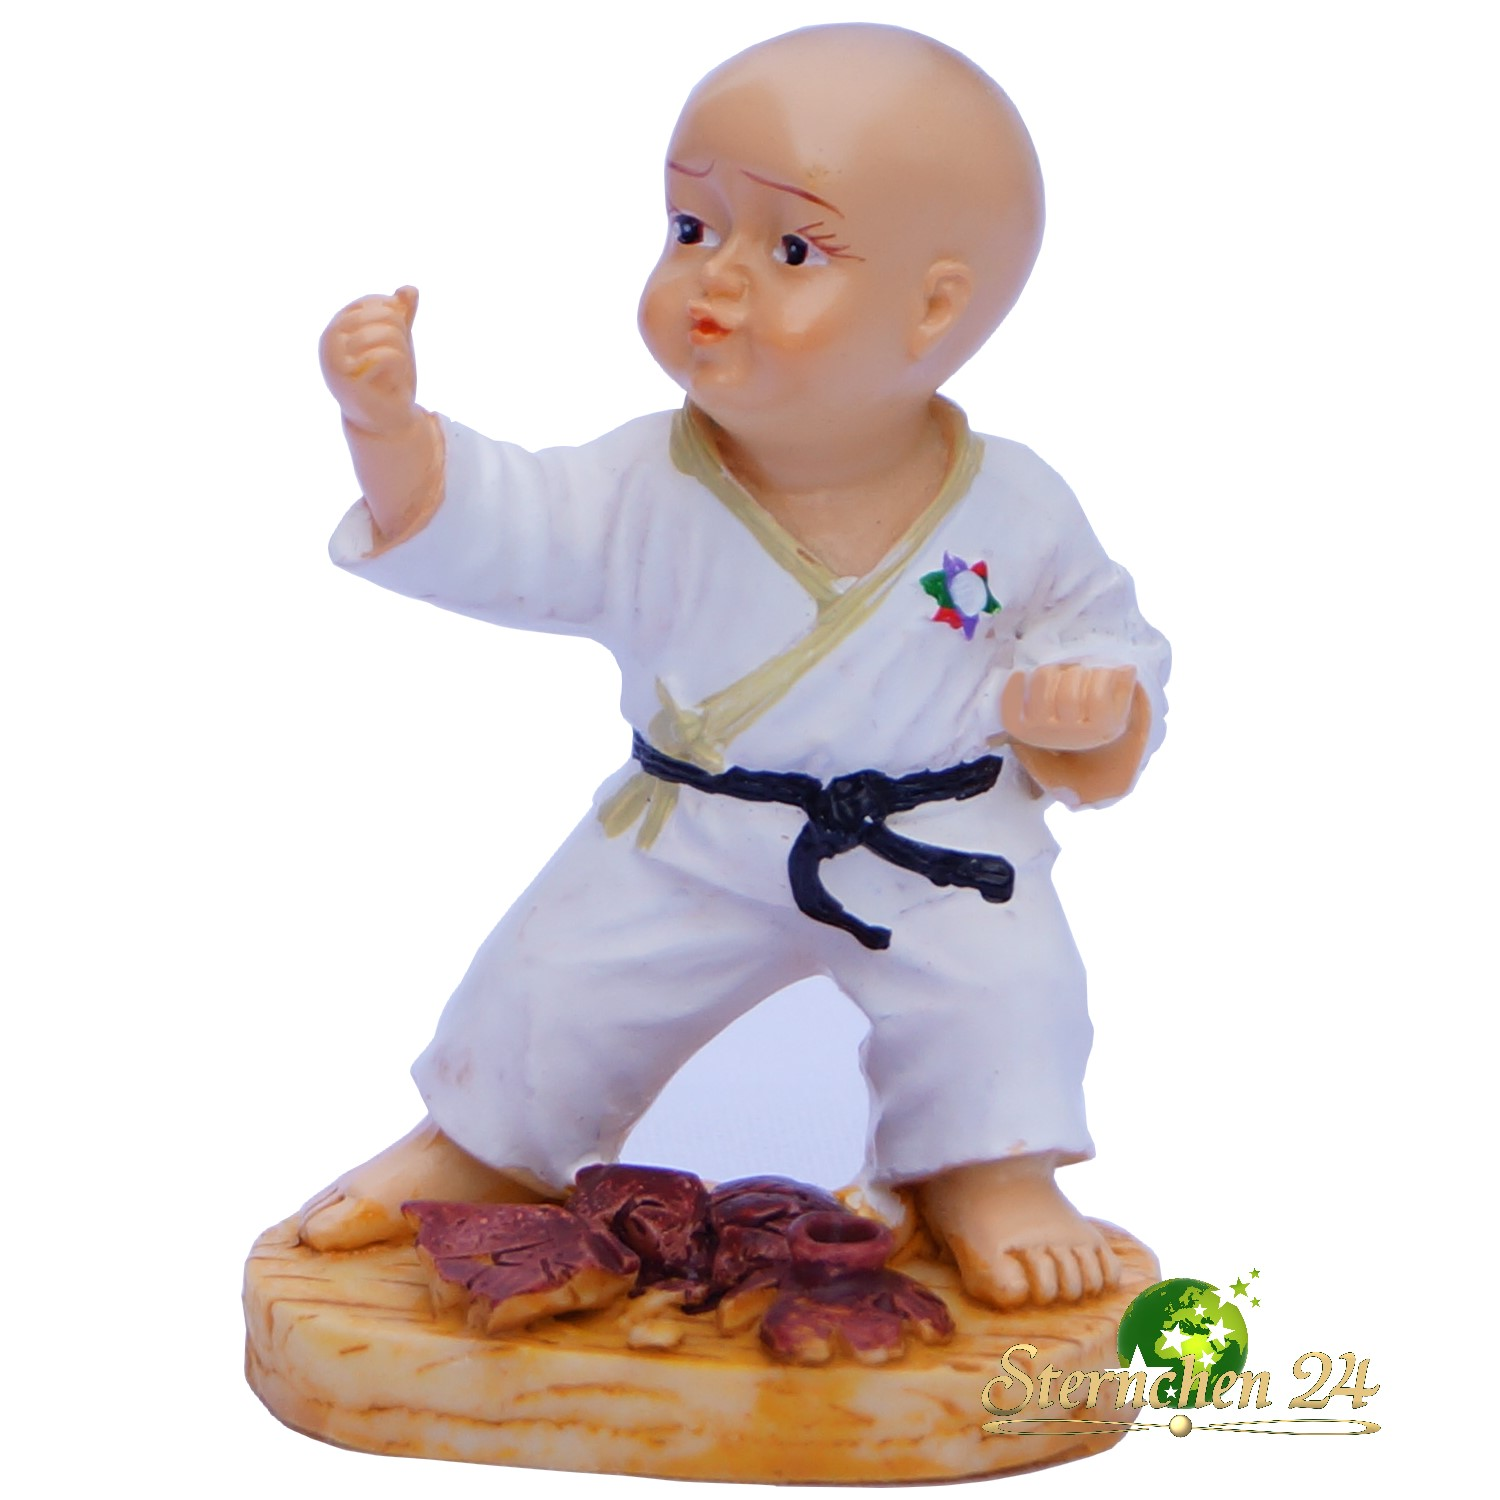 KAMPFSPORT KARATE FIGUR Fighter 003 - uchi uke